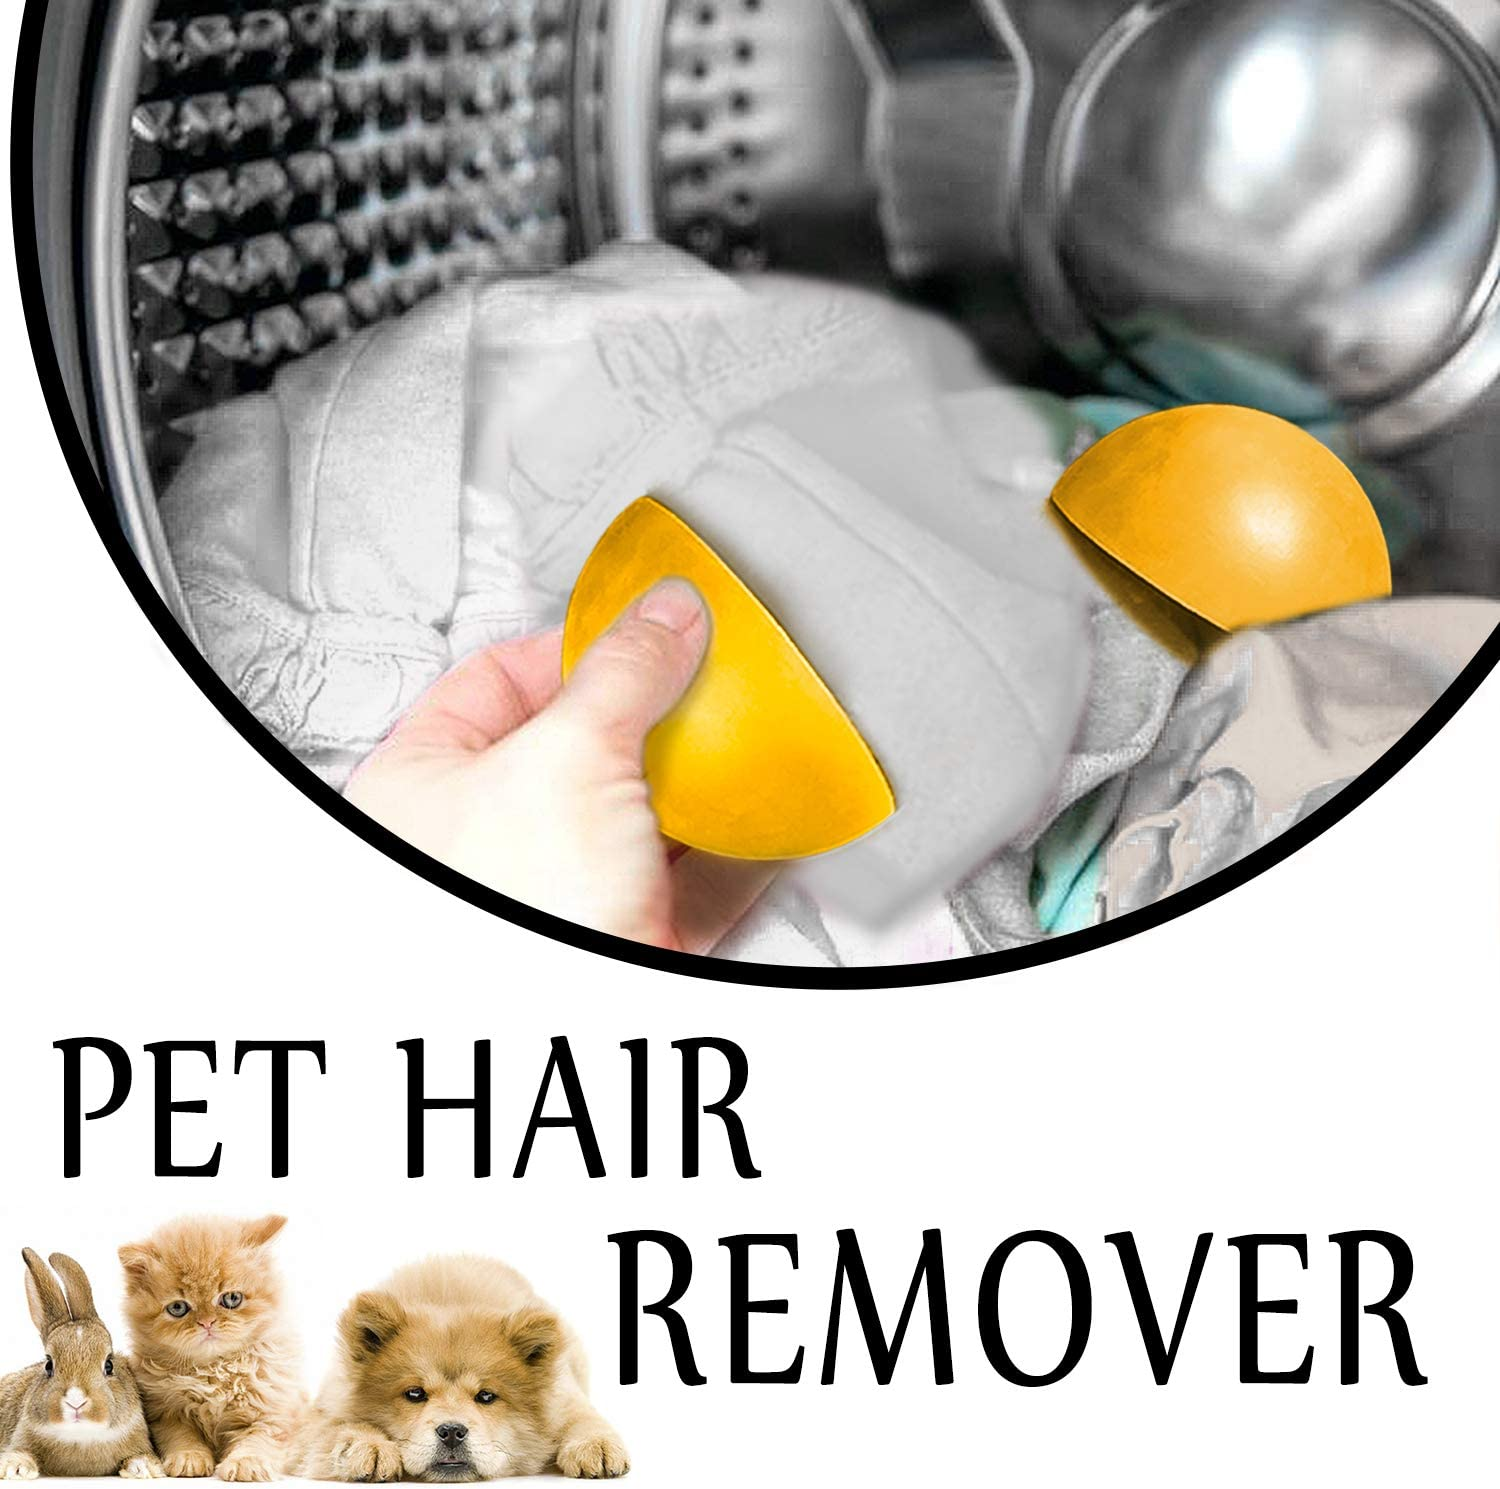 Pet Hair Remover Lint Fur Catcher Non-Toxic Reusable Removal Tool Remove Dogs and Cats Hair for Laundry Dryer, Clothes, Furniture, Carpets